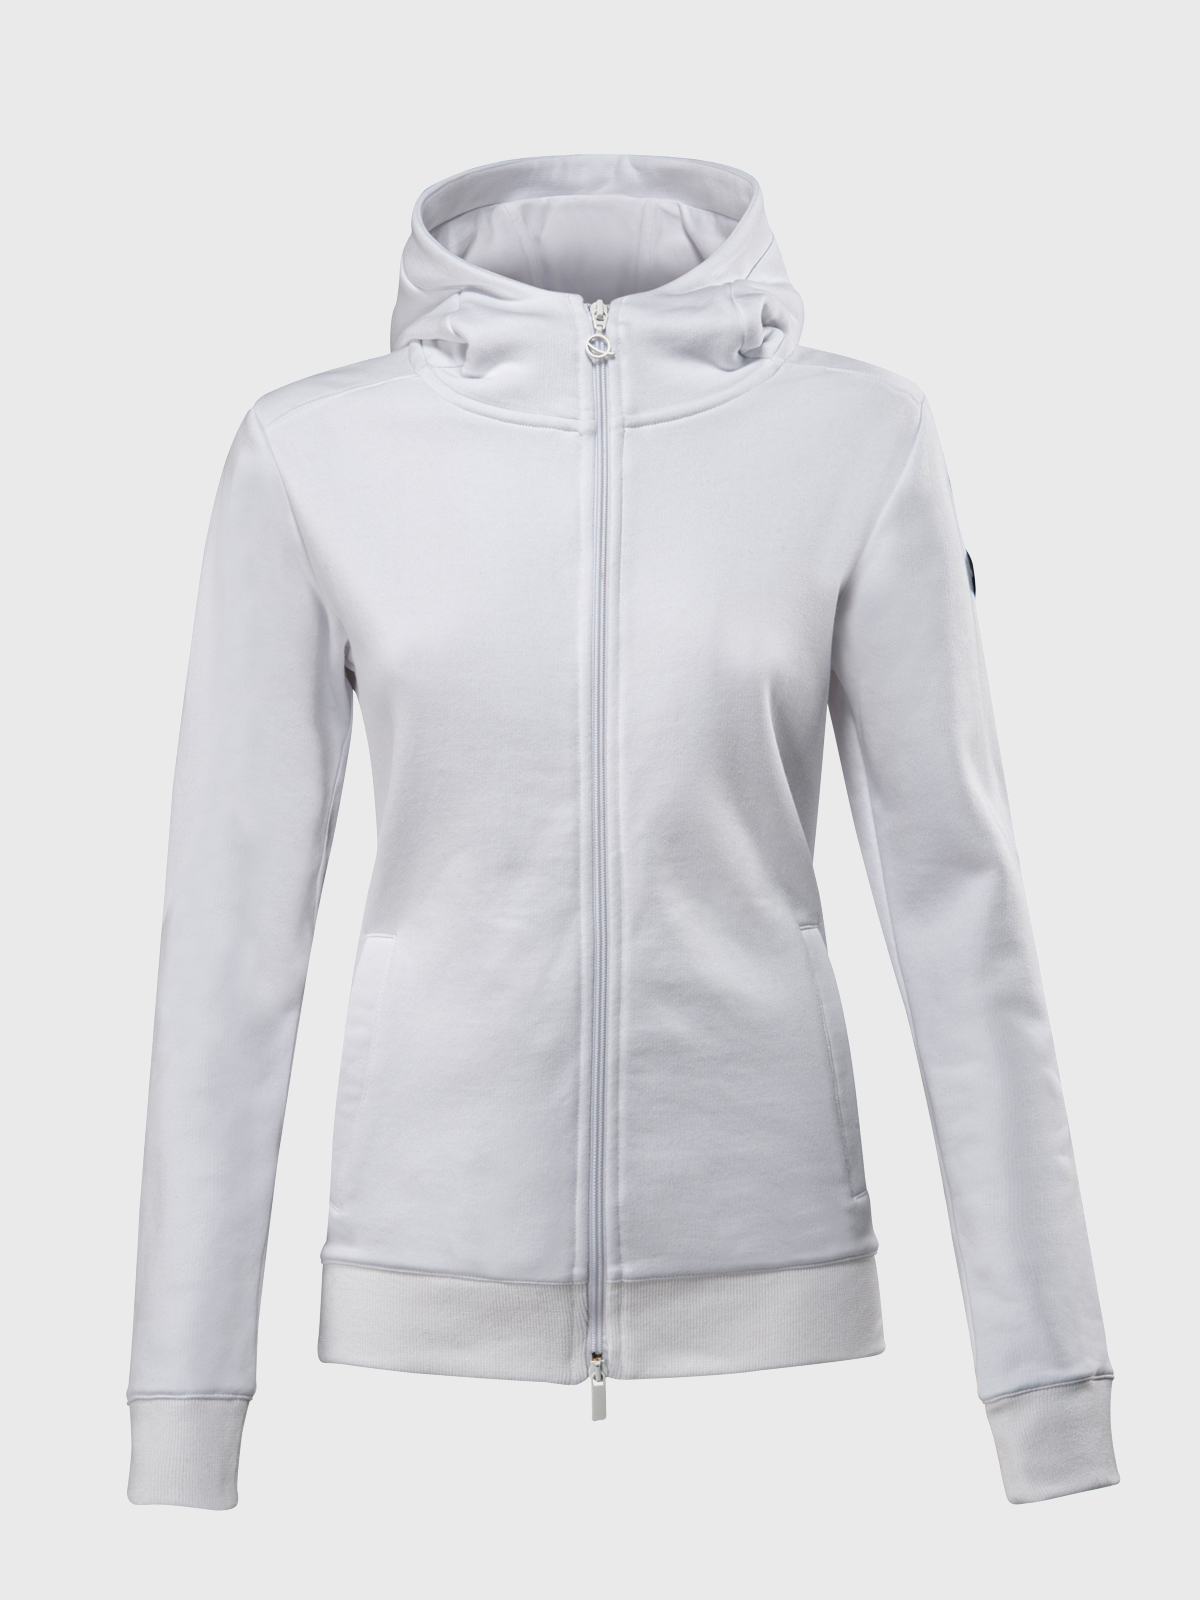 EQODE WOMEN'S FULL-ZIP FLEECE HOODIE 1